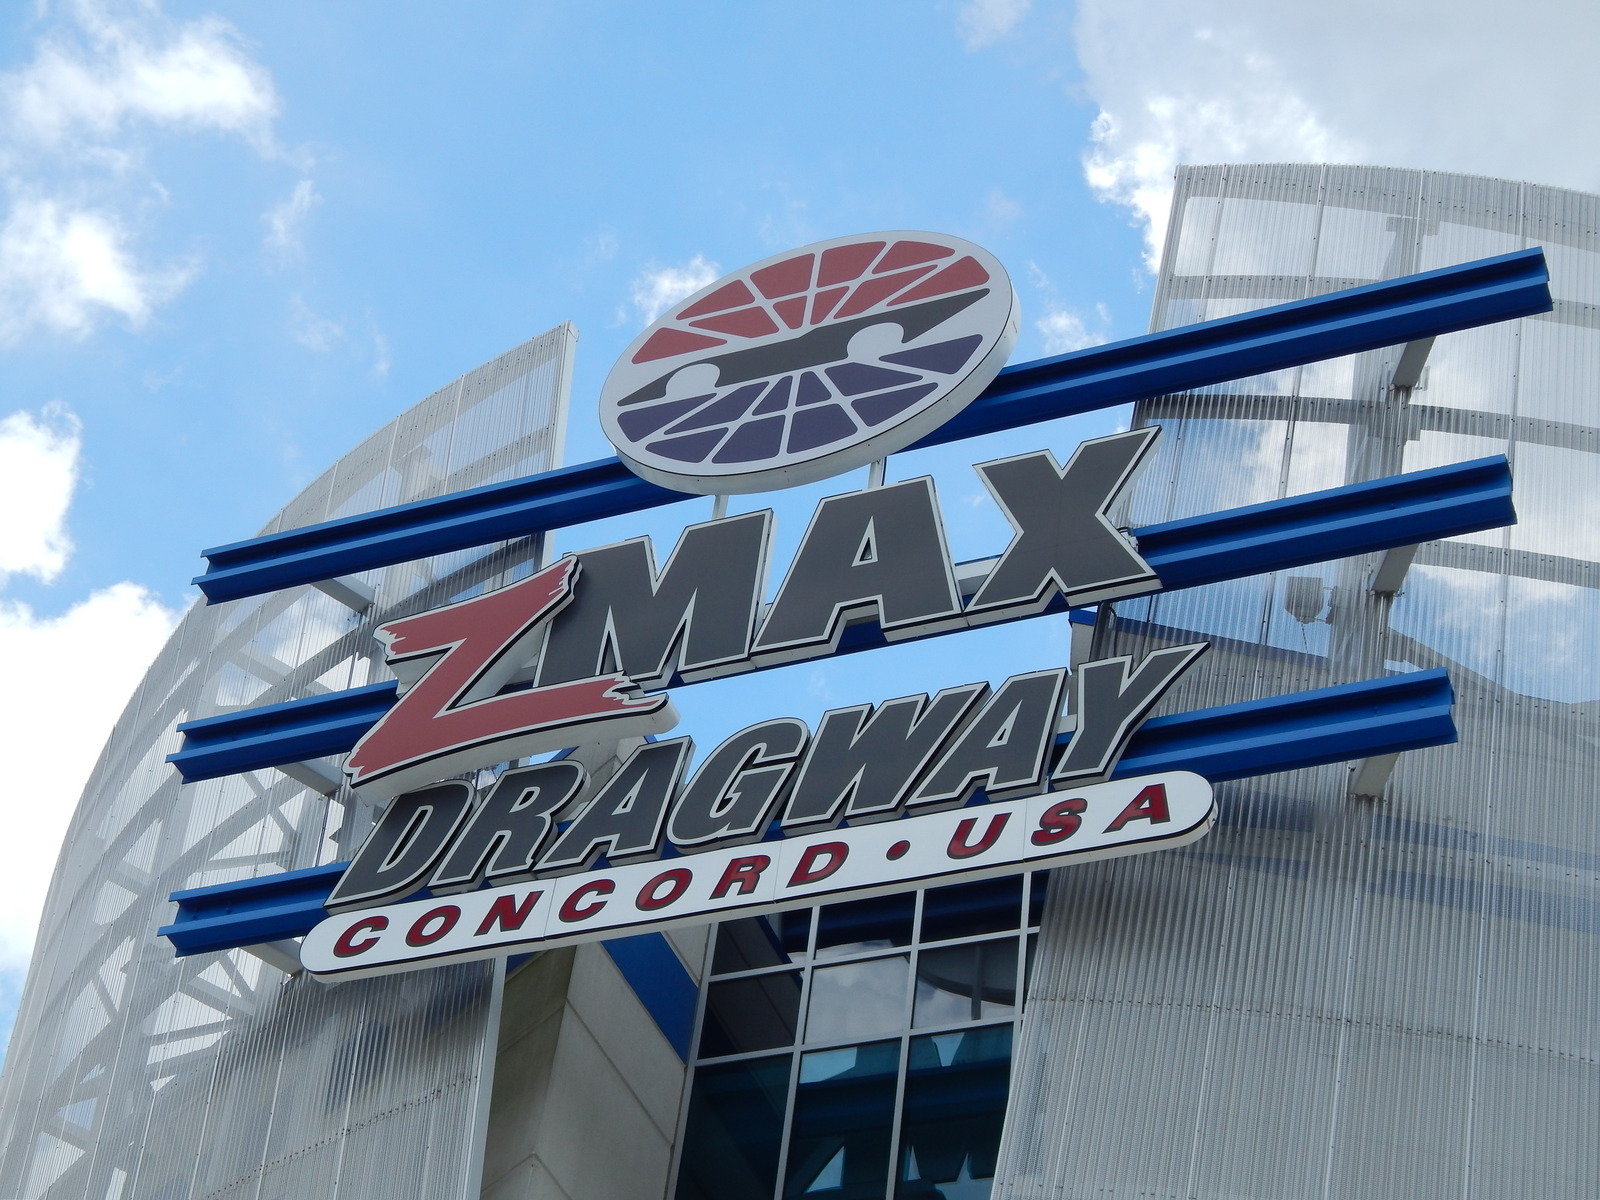 Charlotte Motor Speedway Concord Nc Kid Friendly